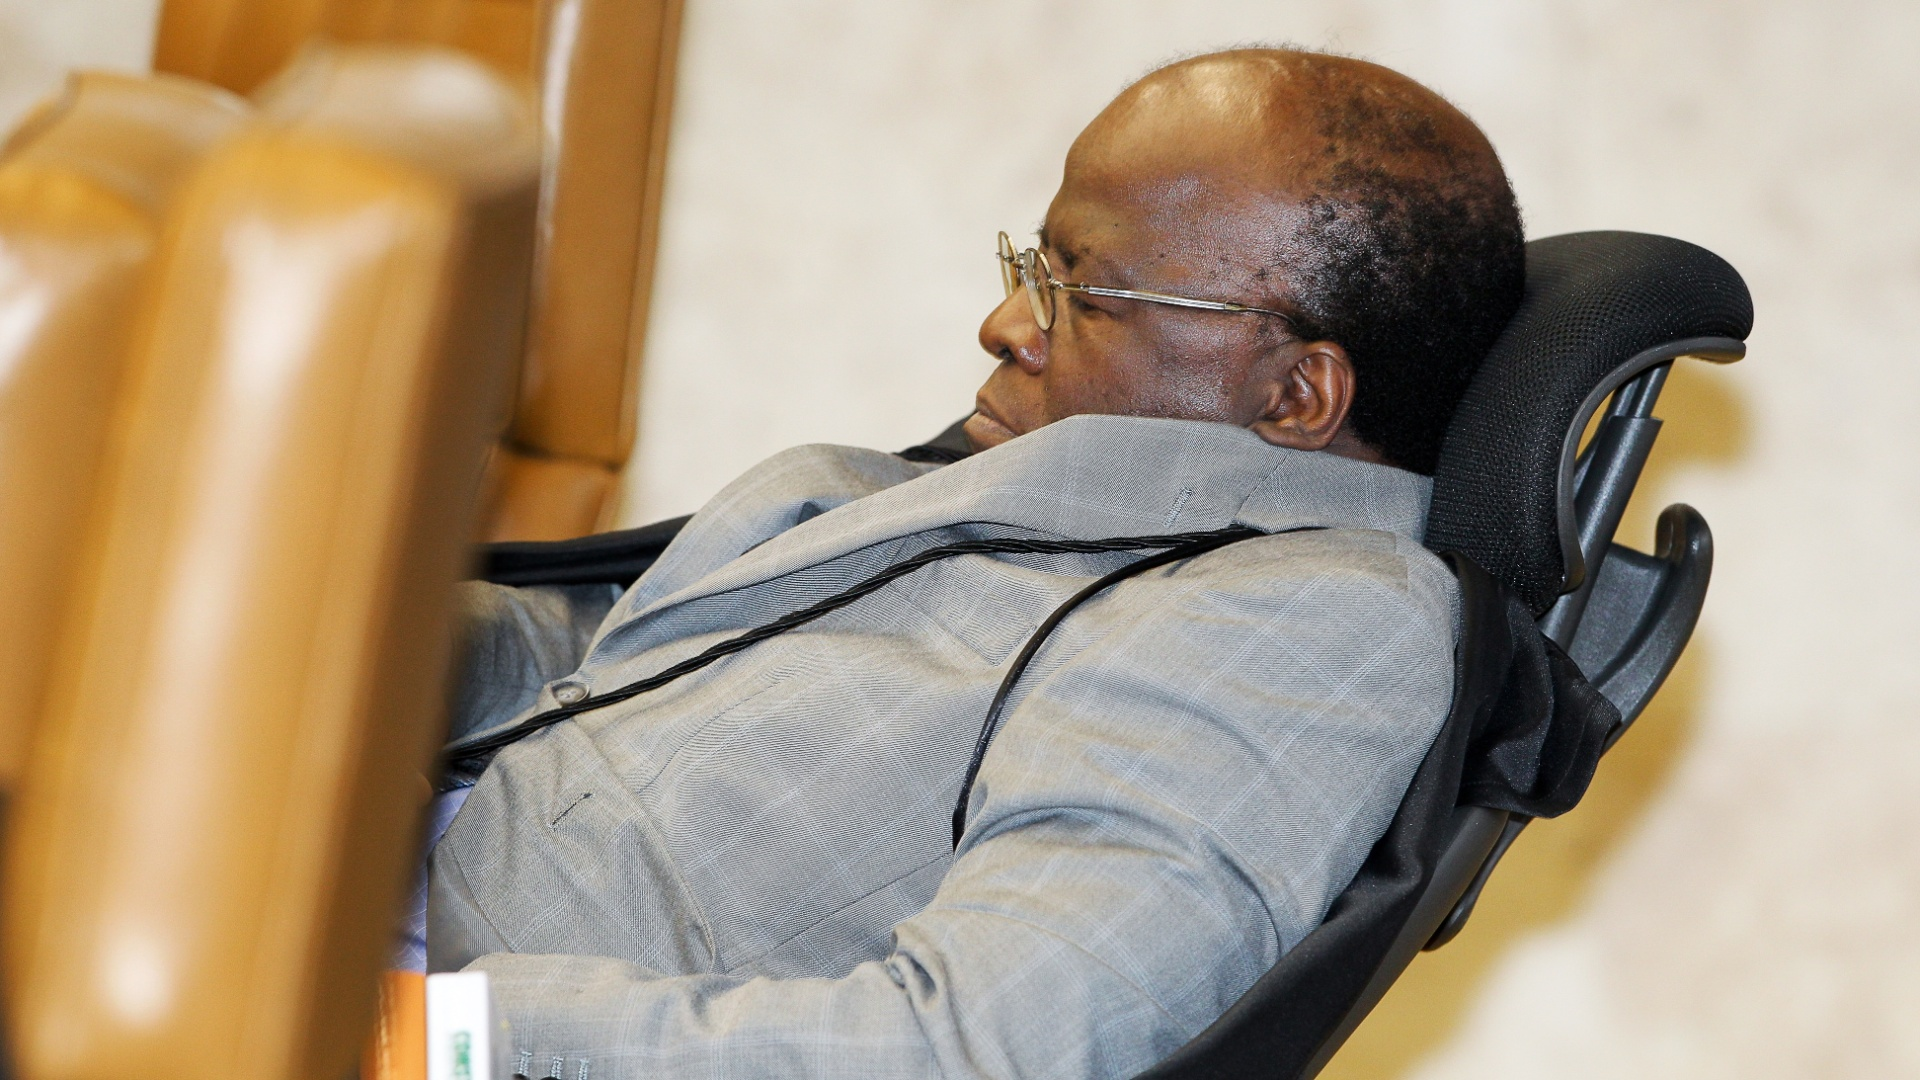 9.out.2012 - Ministro Joaquim Barbosa no plenario do Supremo Tribunal Federal (STF) durante julgamento do mensalao